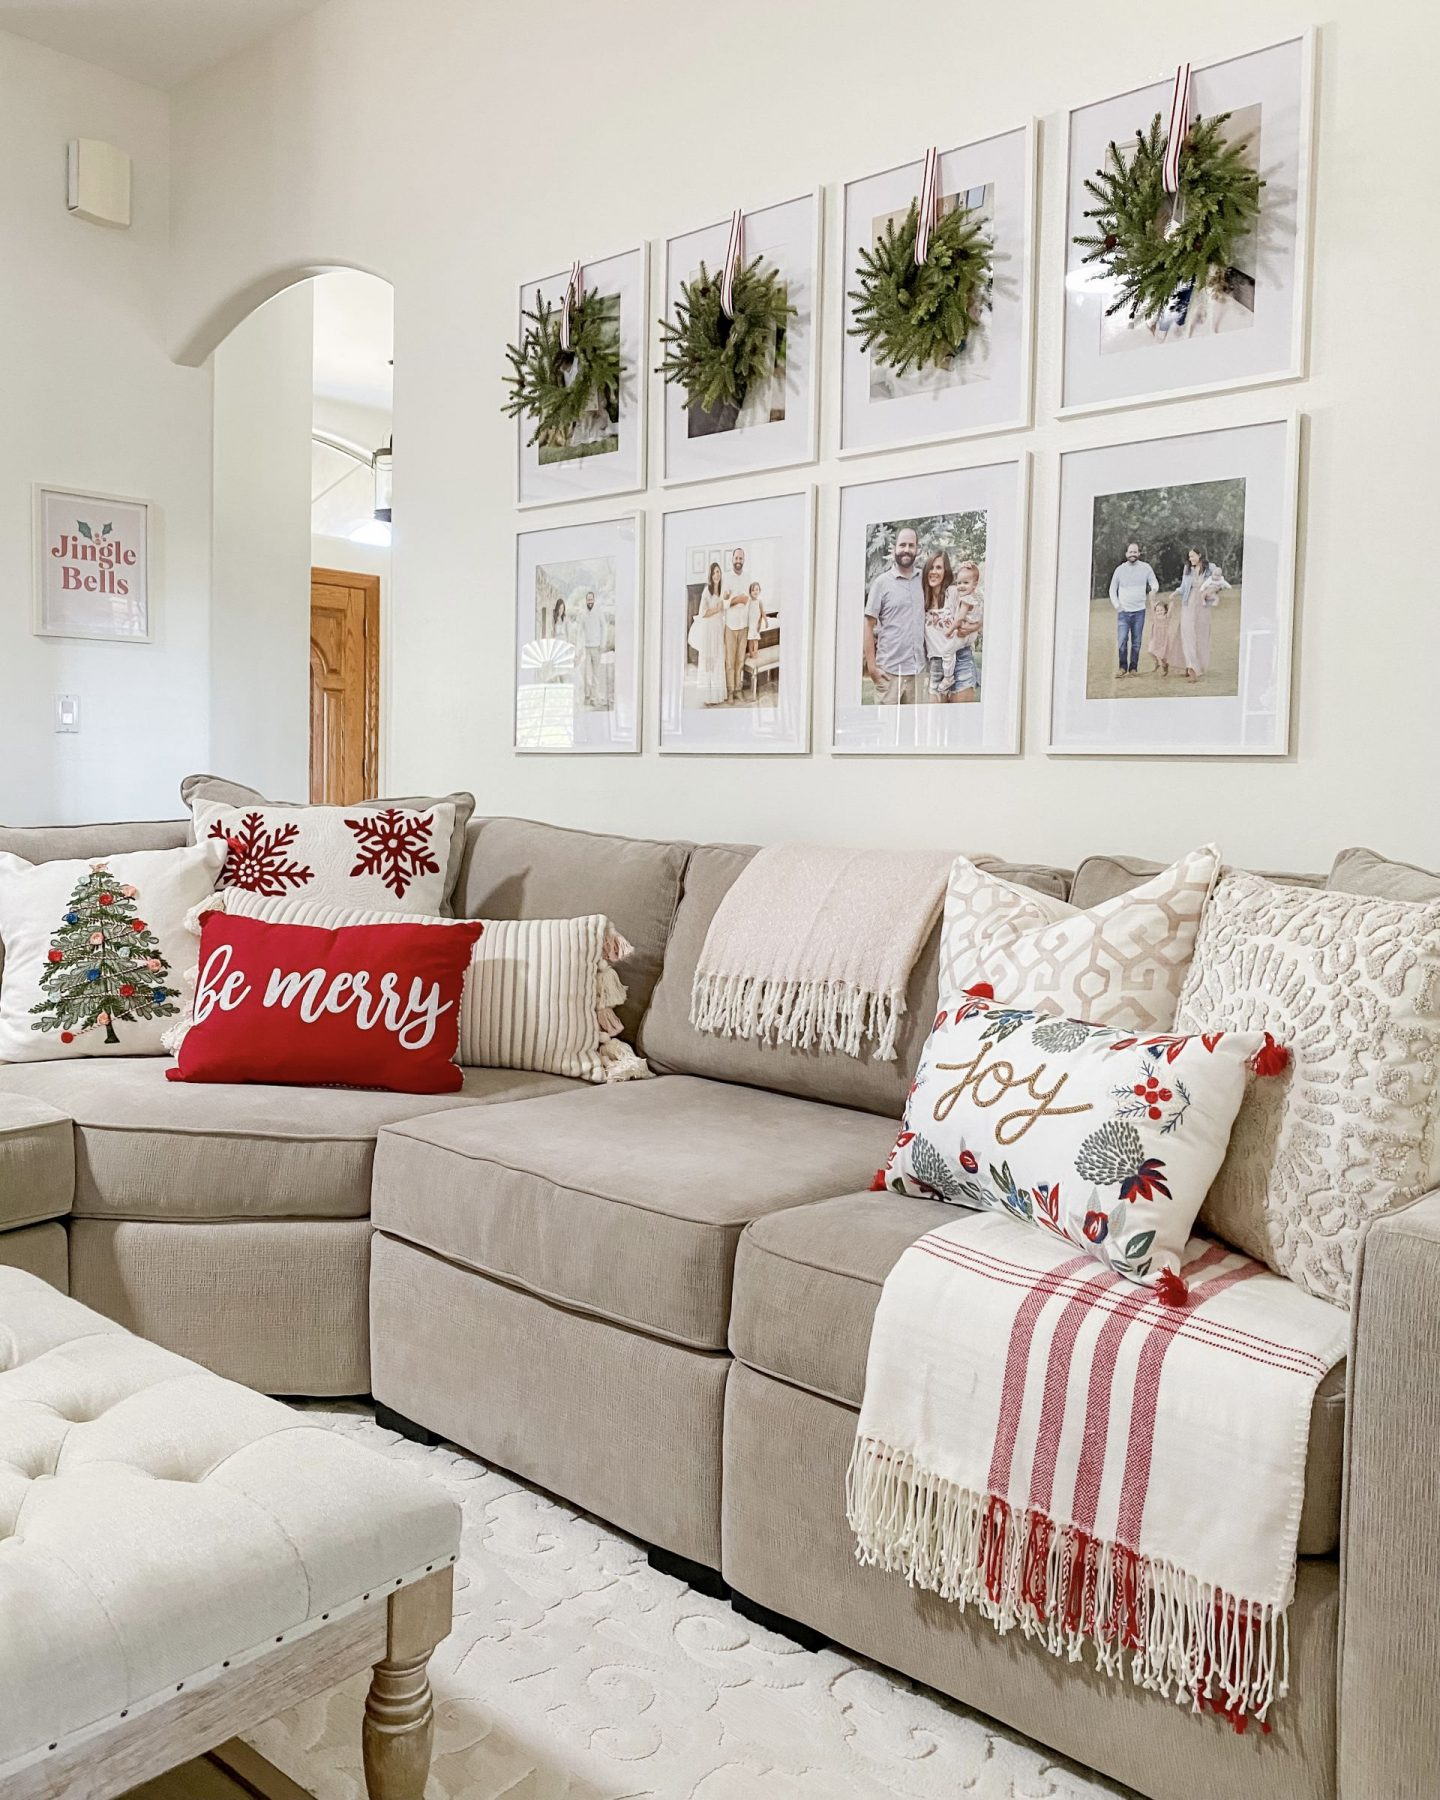 Christmas Home Tour Holiday Decor Wreaths Over Picture Frames